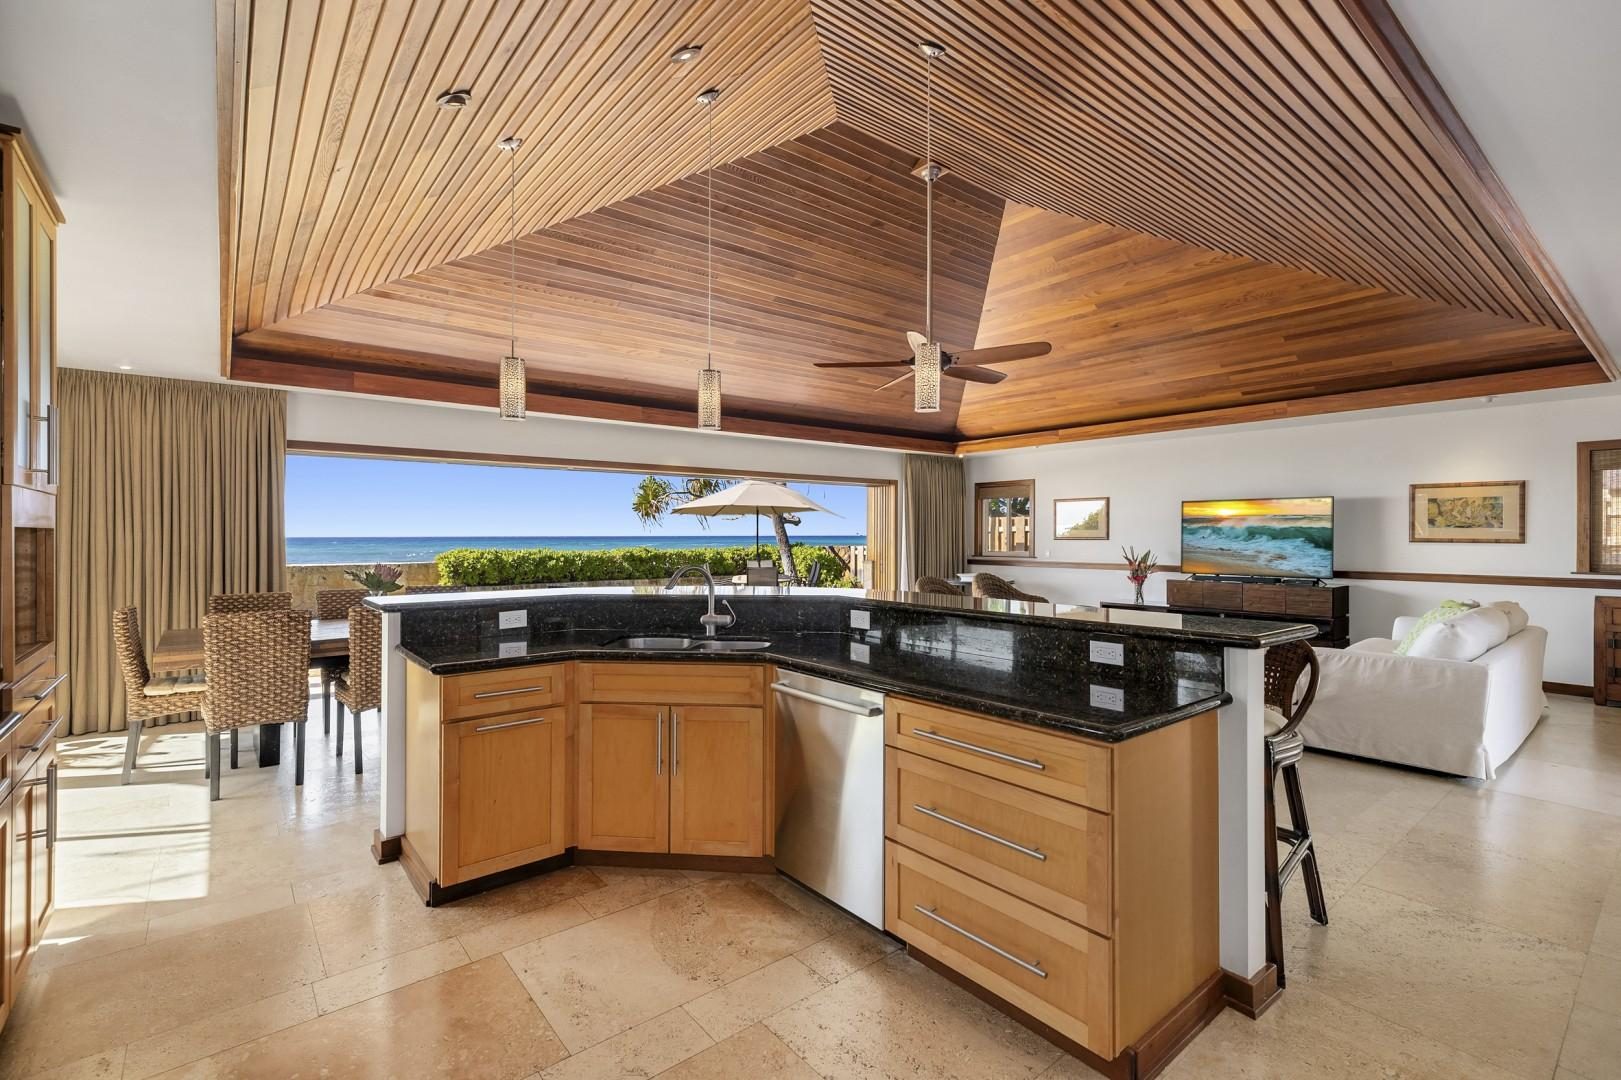 Open-concept kitchen with spectacular ocean views.